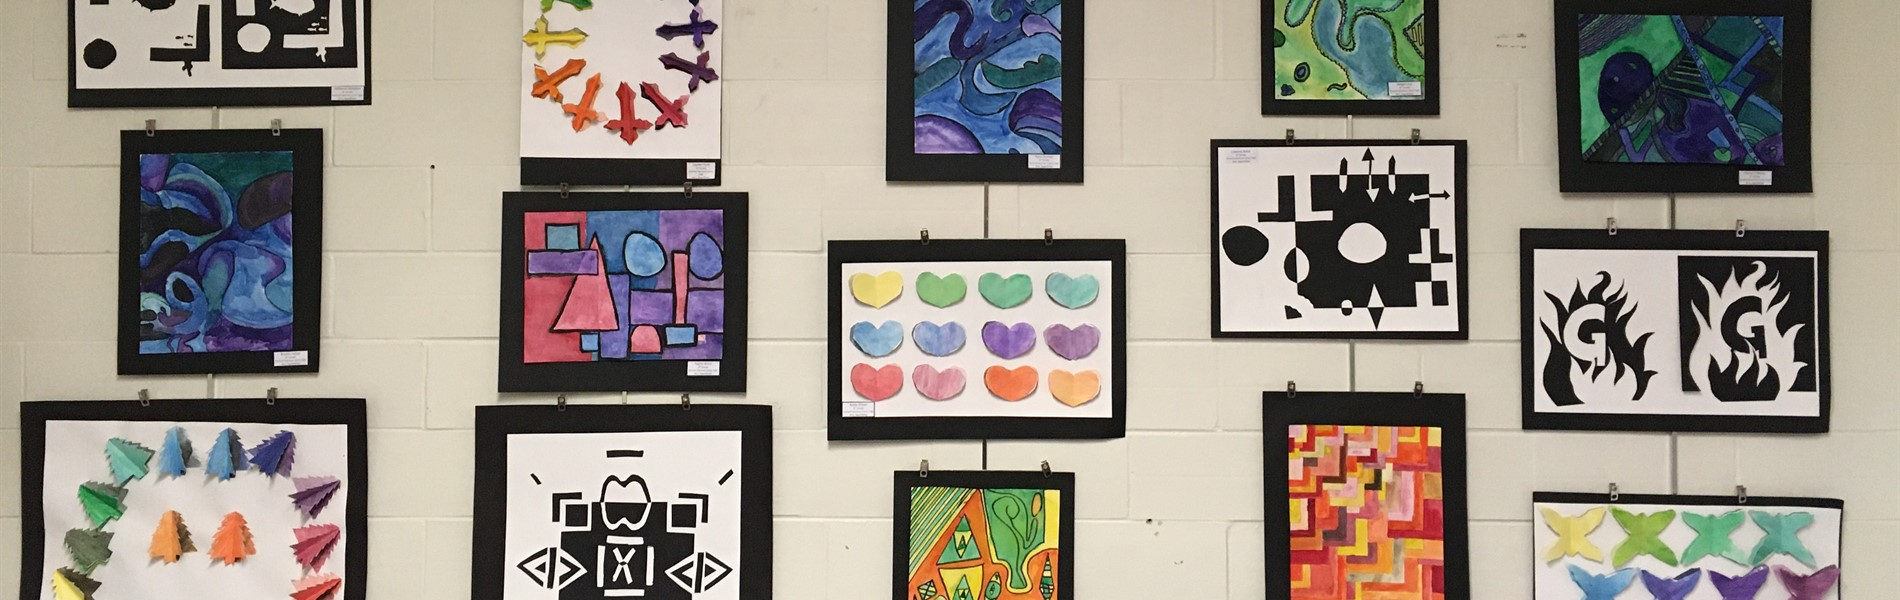 March 2020 Art Display at Central Office (Art work by General Sherman JH 6th graders)